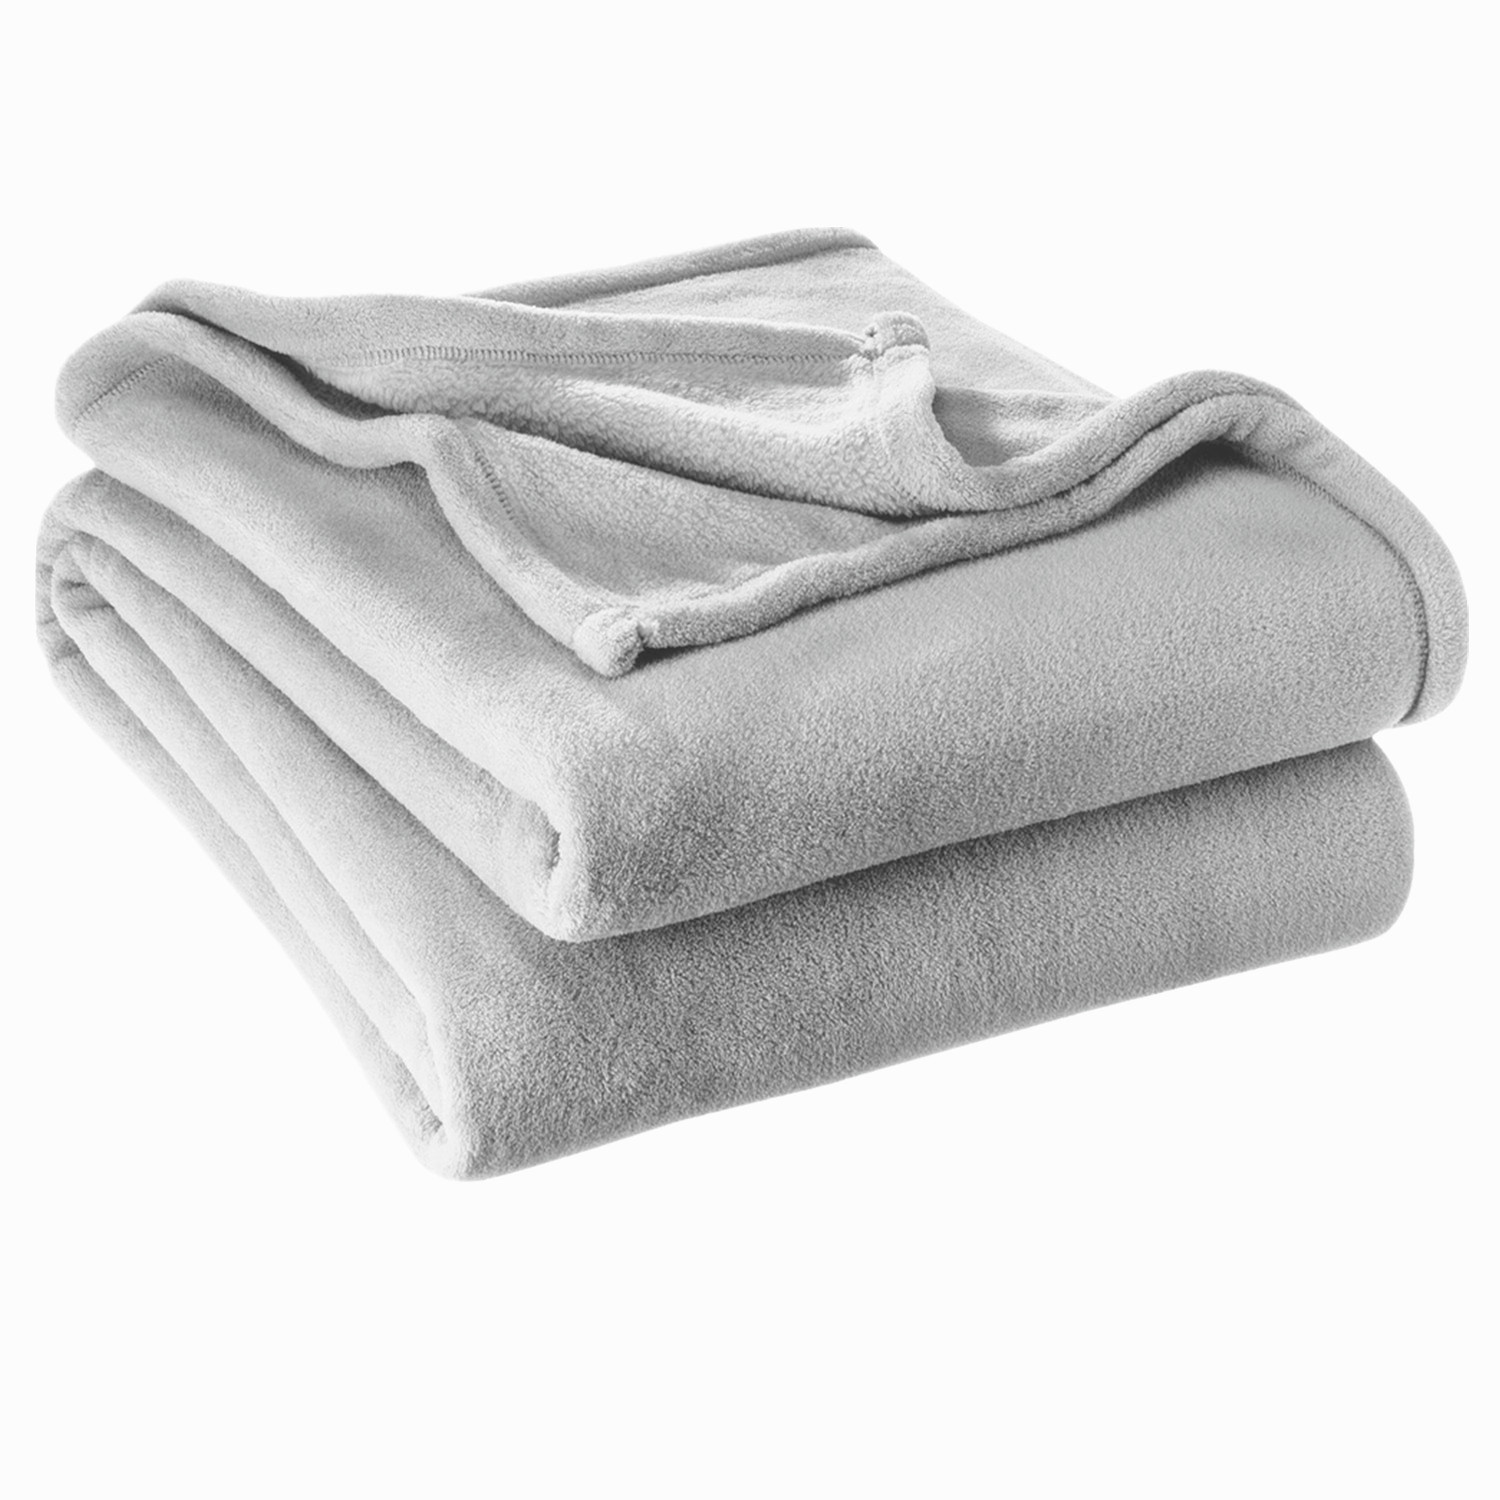 Super Soft Solid Color Coral Fleece Blanket Warm Sofa Cover Twin Queen Full Size Fluffy Flannel Mink Blankets